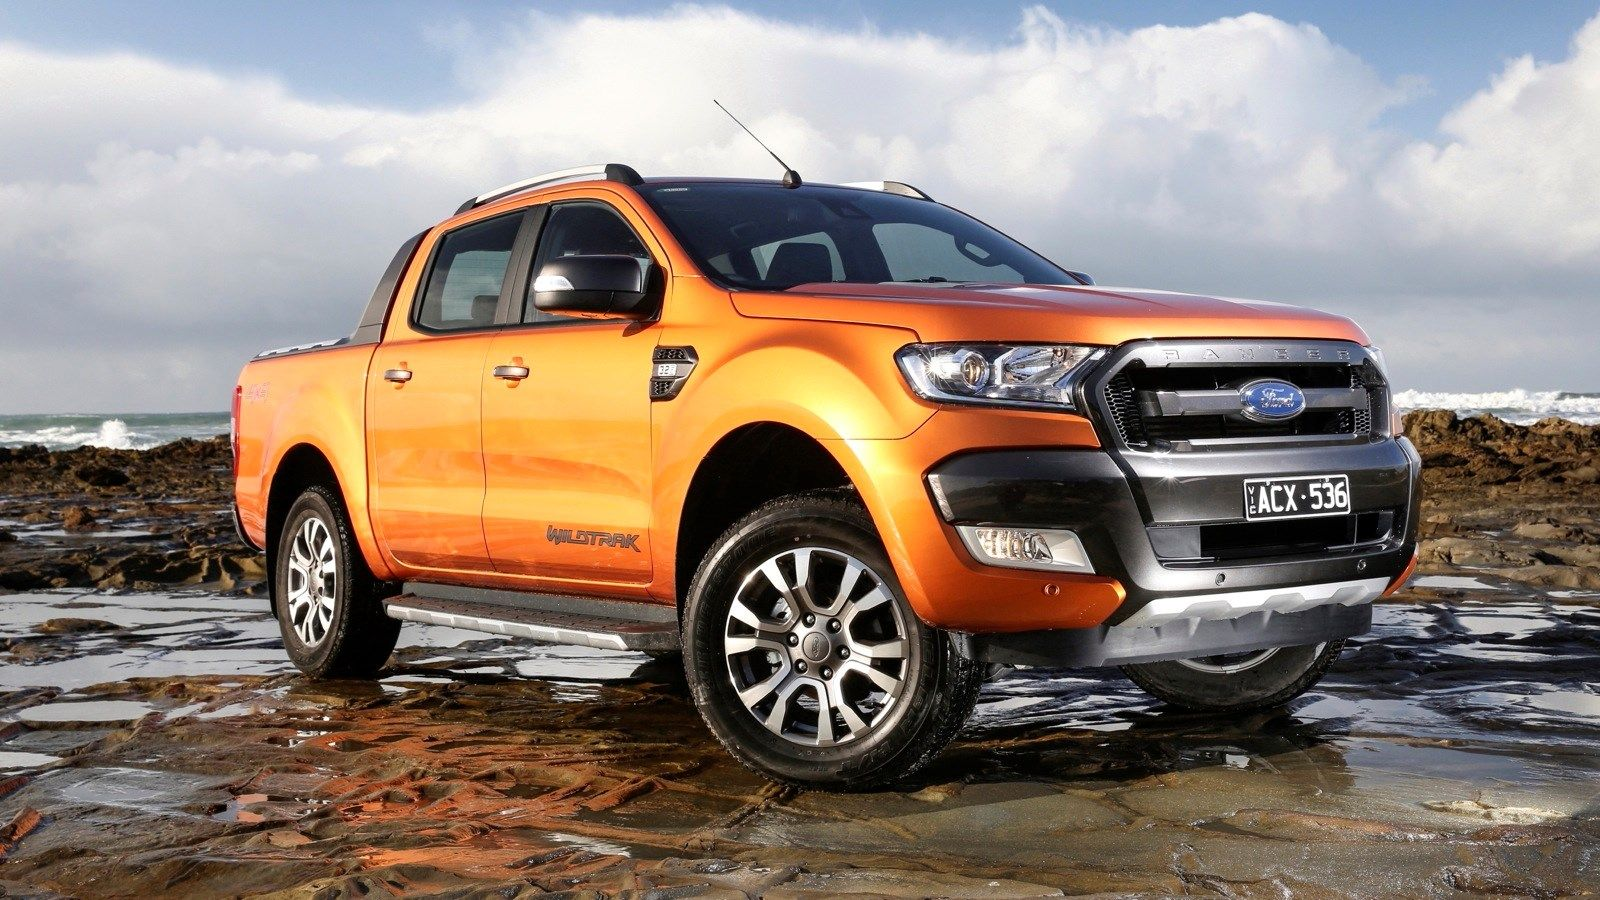 1600x900 - Ford Ranger Wallpapers 24